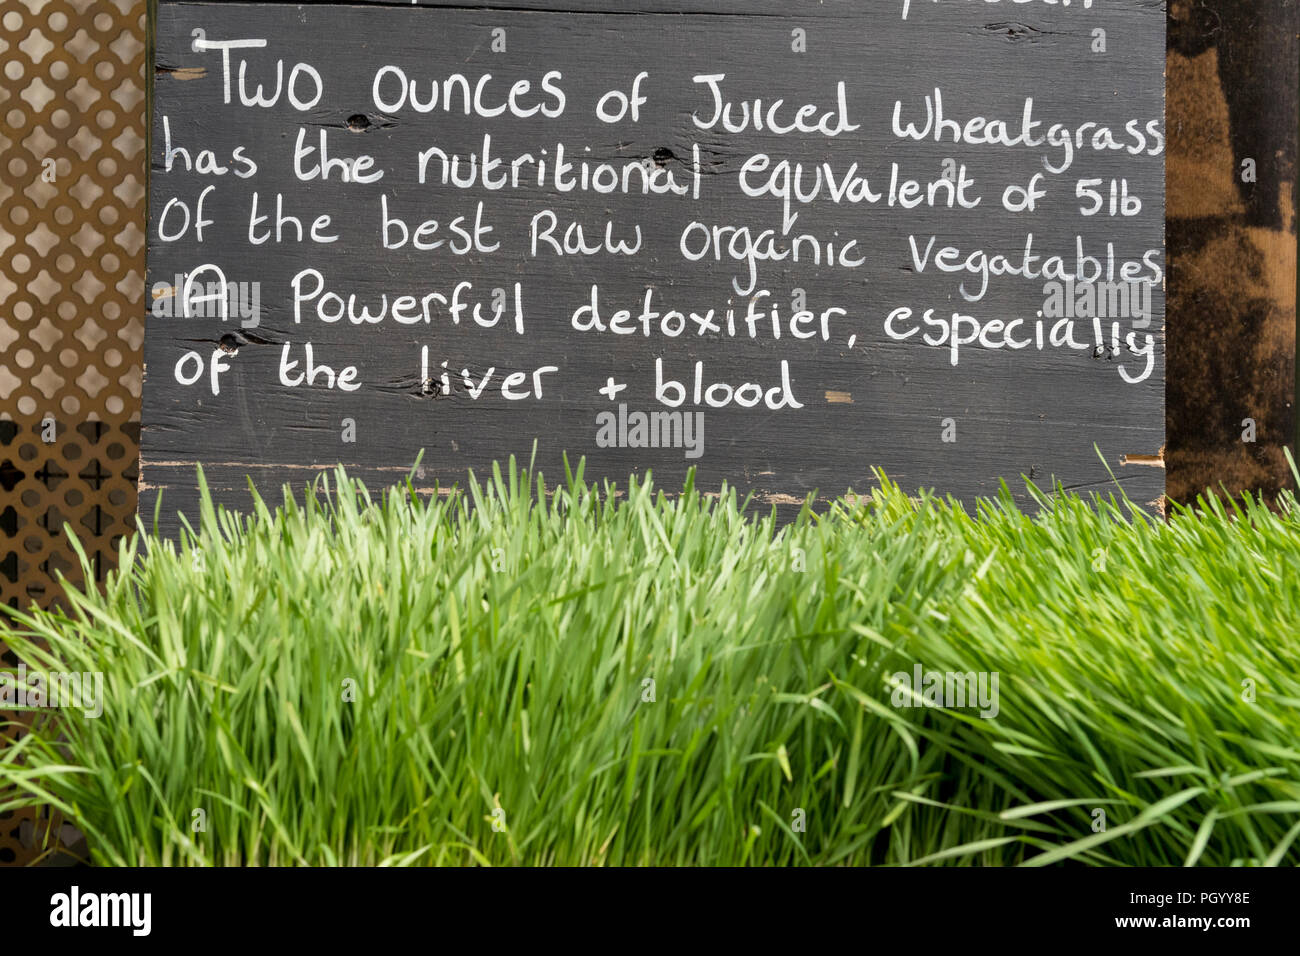 wheatgrass on sale at a market stall with a note on the health benefits. - Stock Image